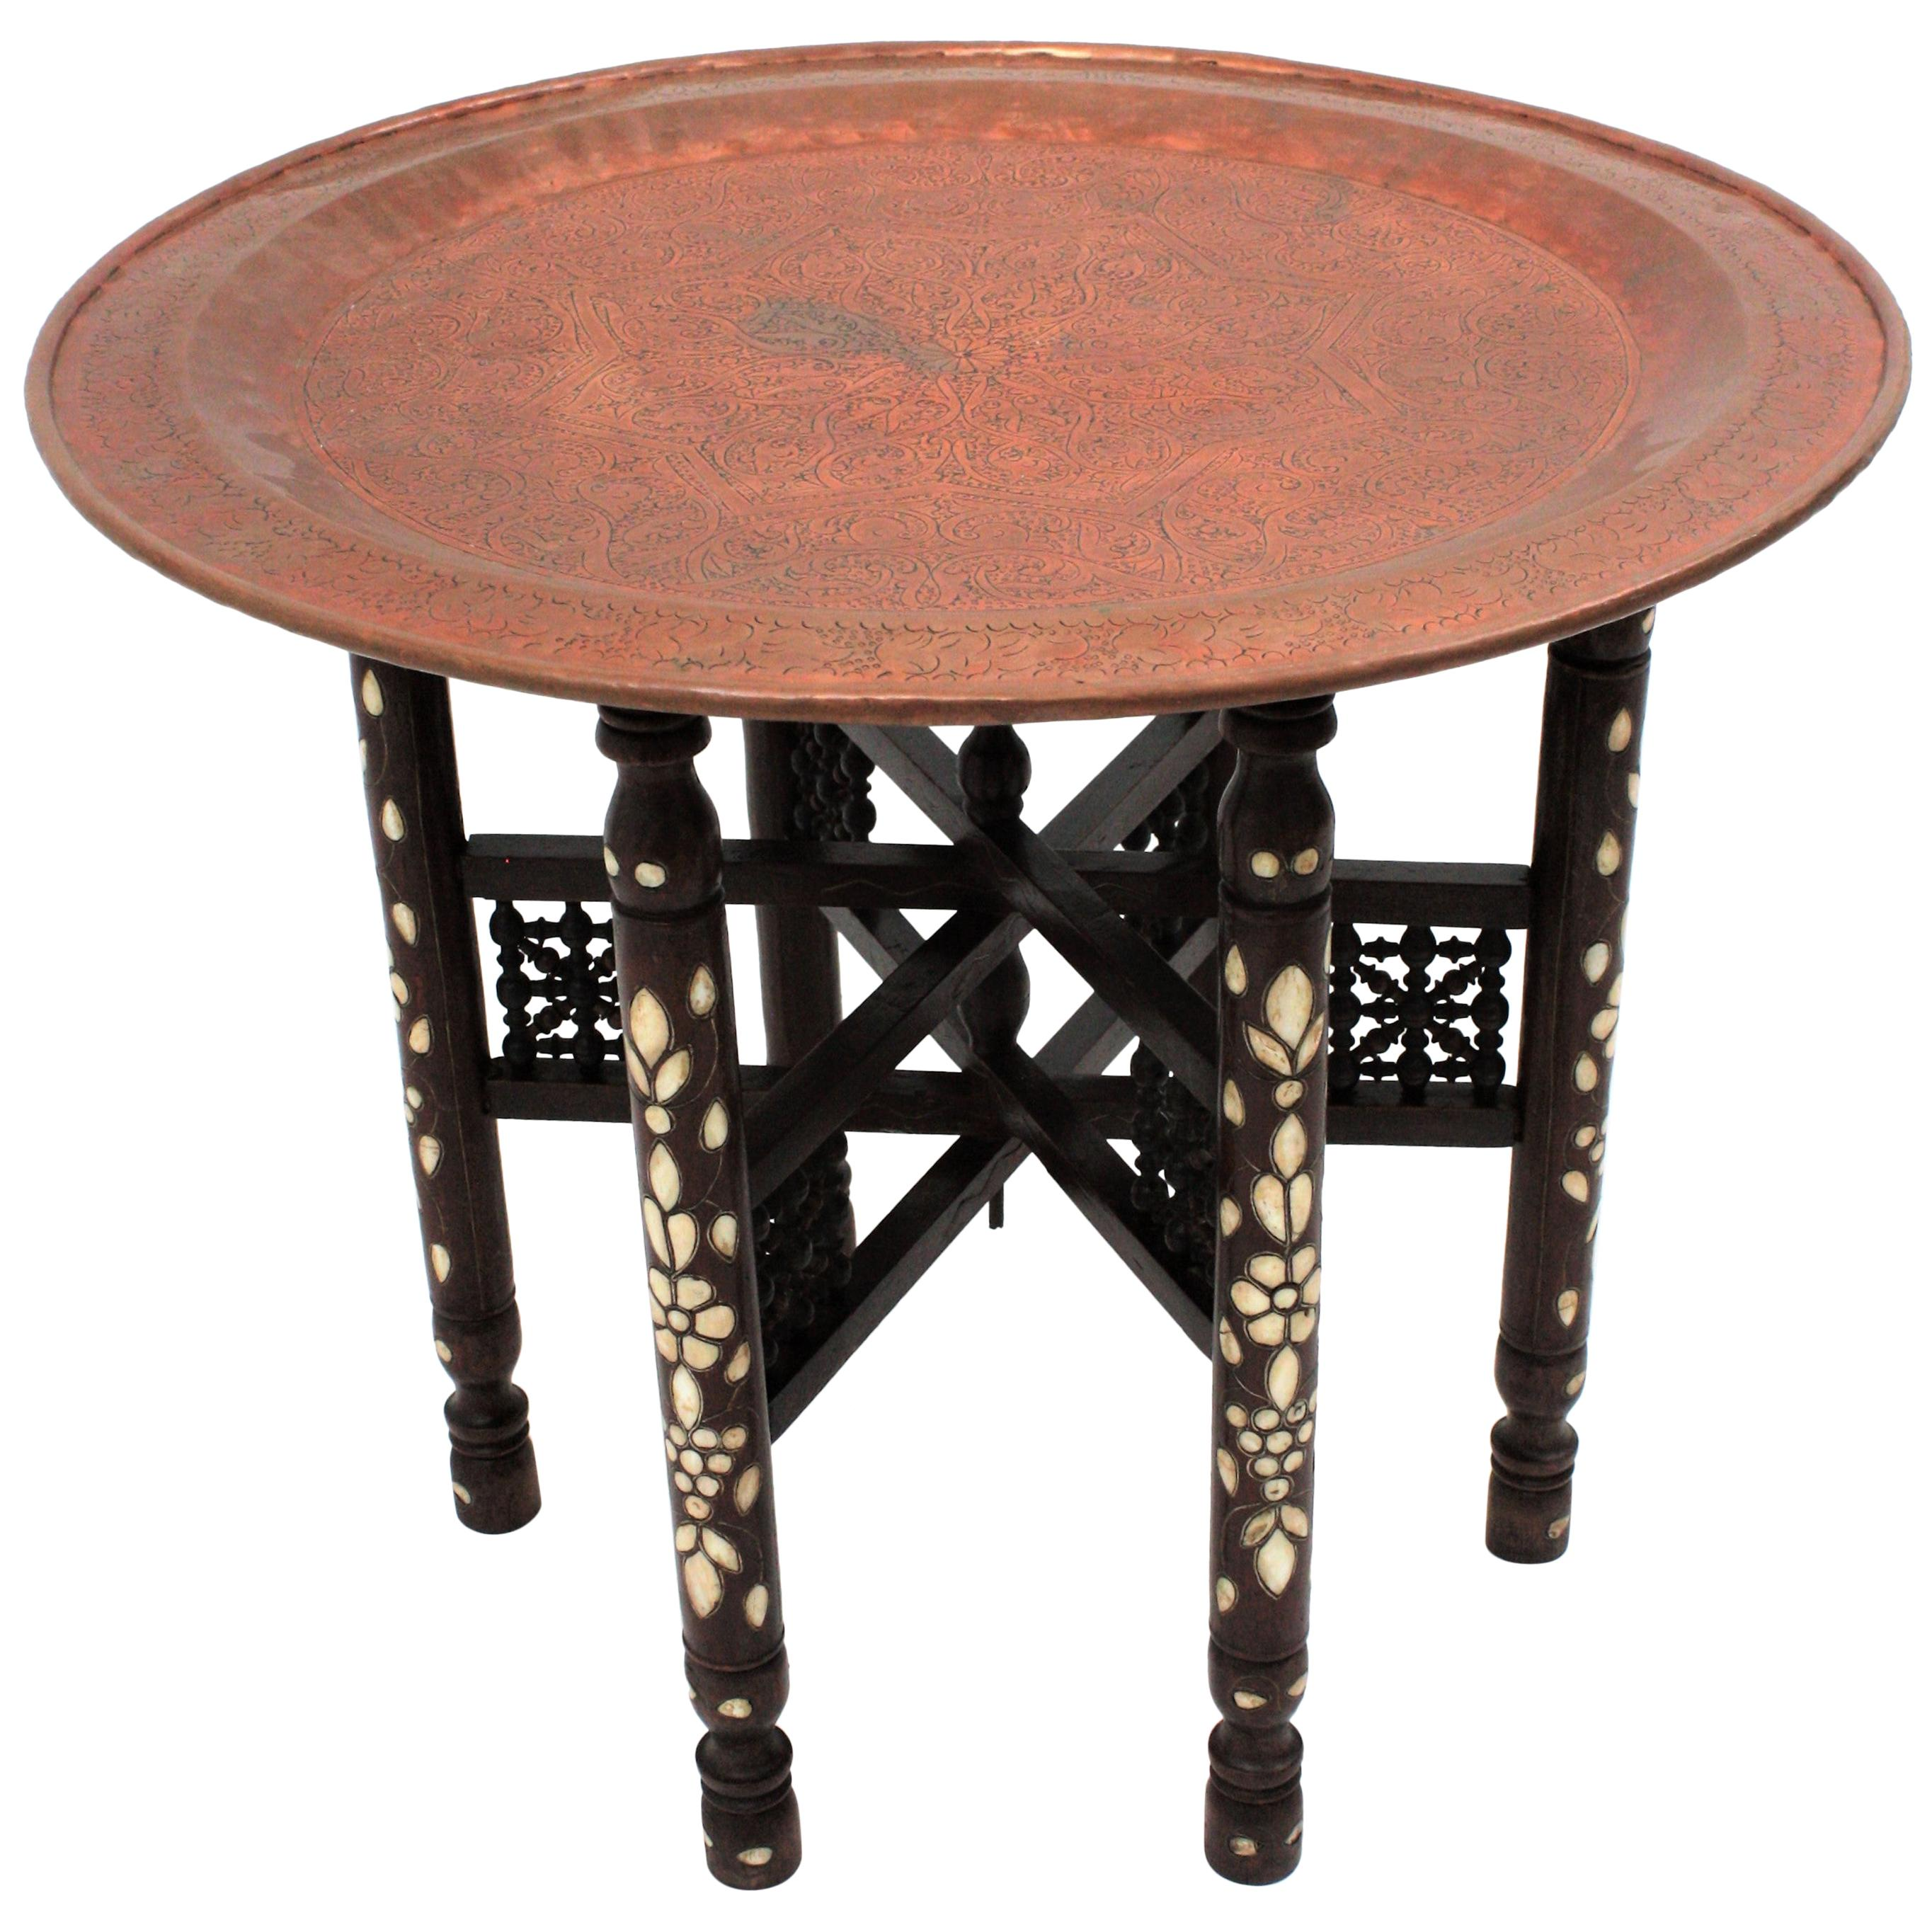 Moorish Copper Tray Table on Wooden Inlaid Folding Stand